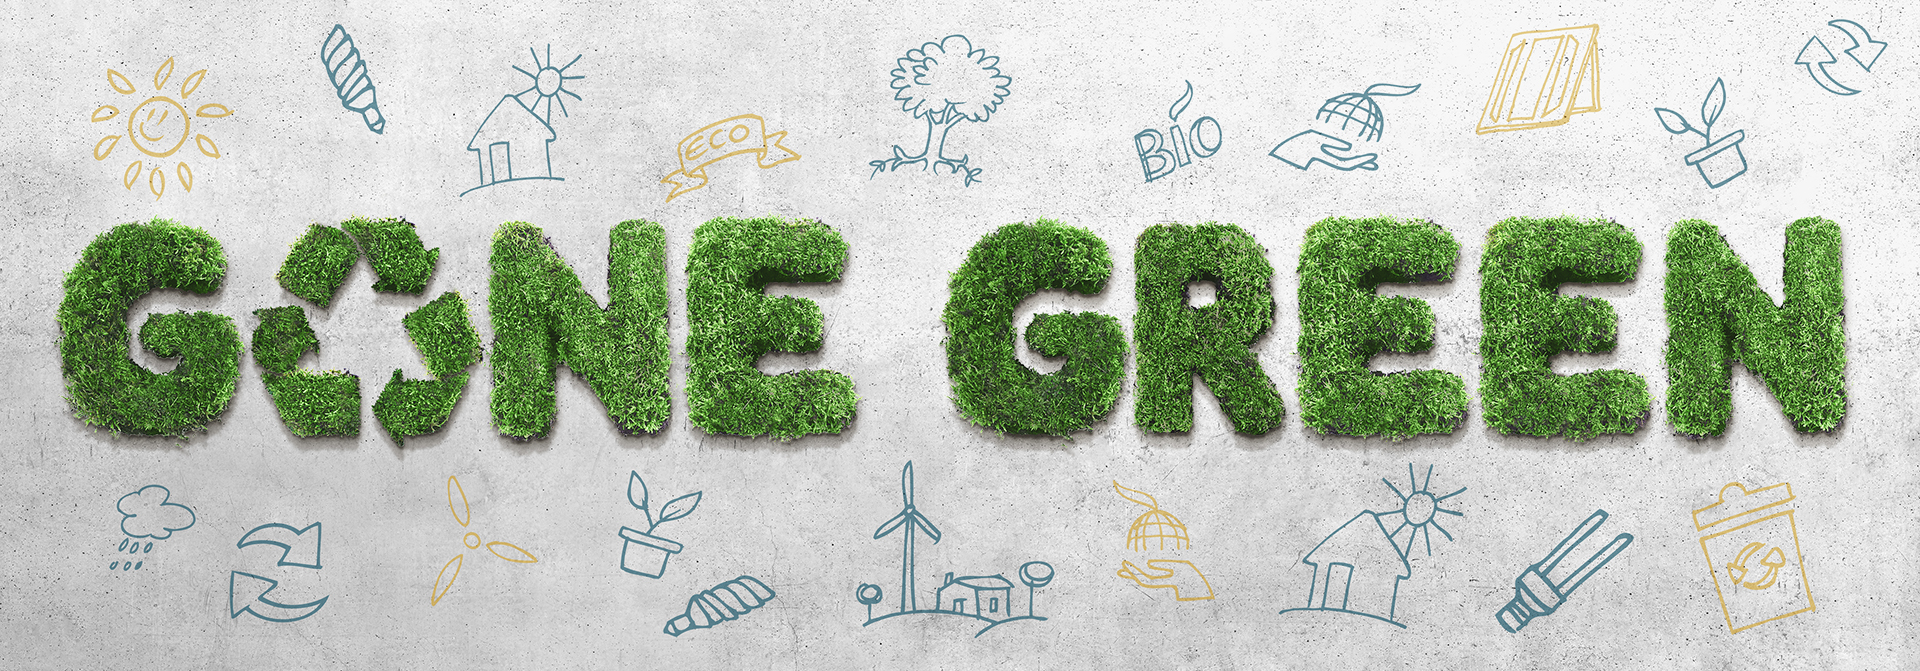 Gone Green marketing examples with eco-friendly icons